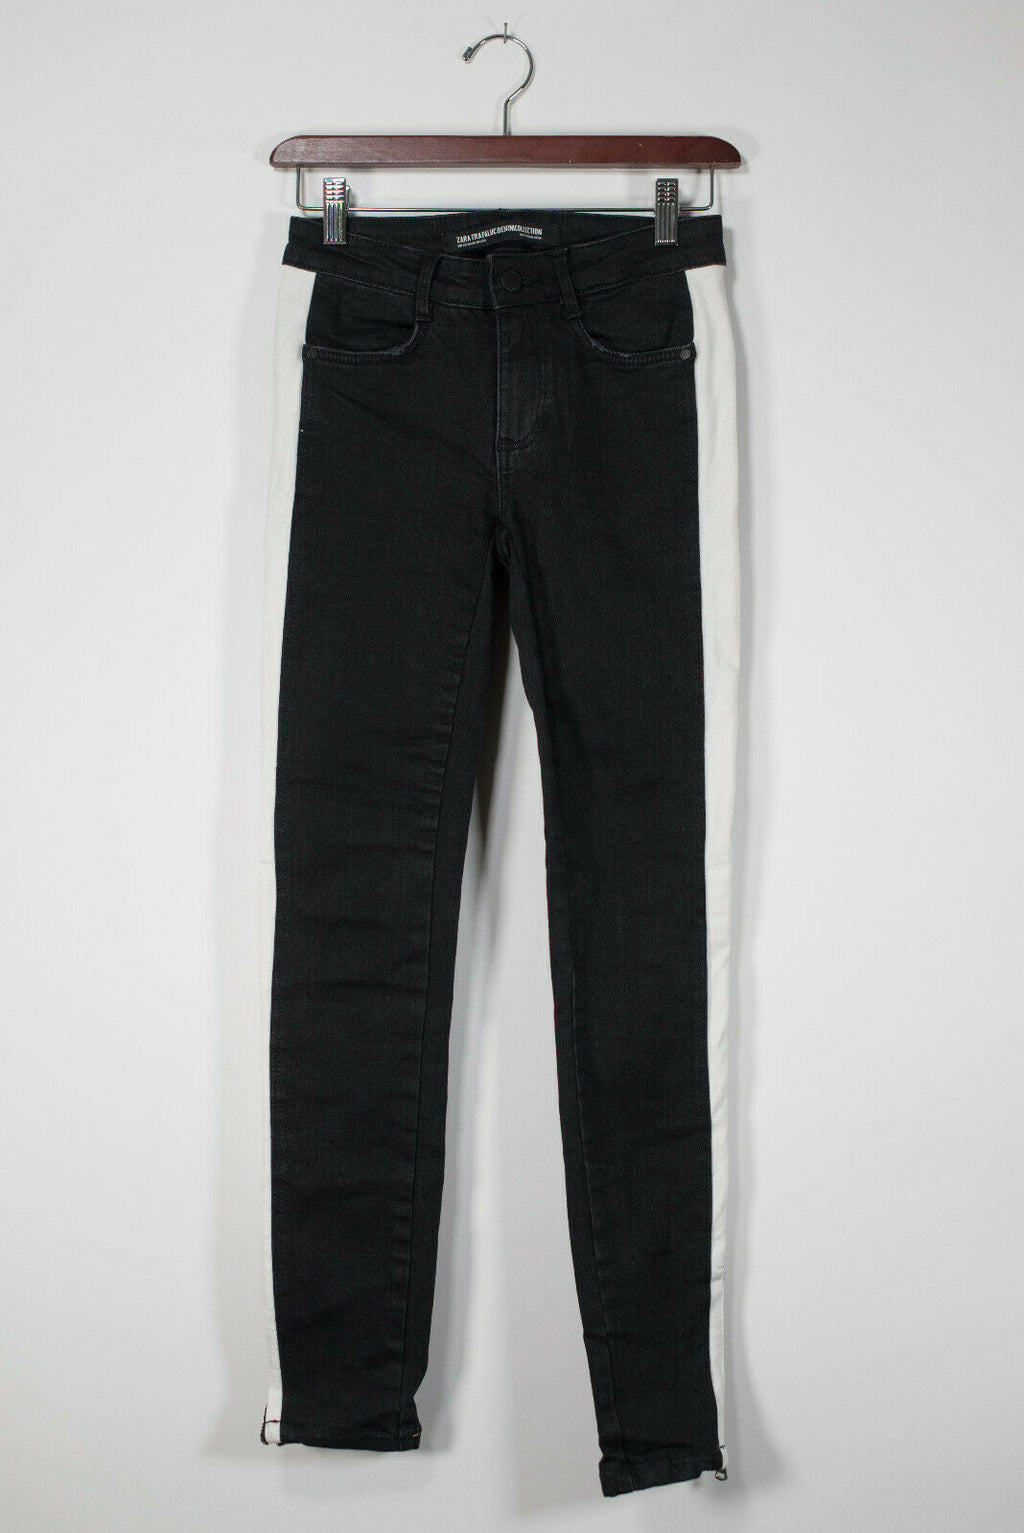 Zara Womens Size 00 XXS Black Skinny Jeans White Stripe Skinny 5 Pocket Denim